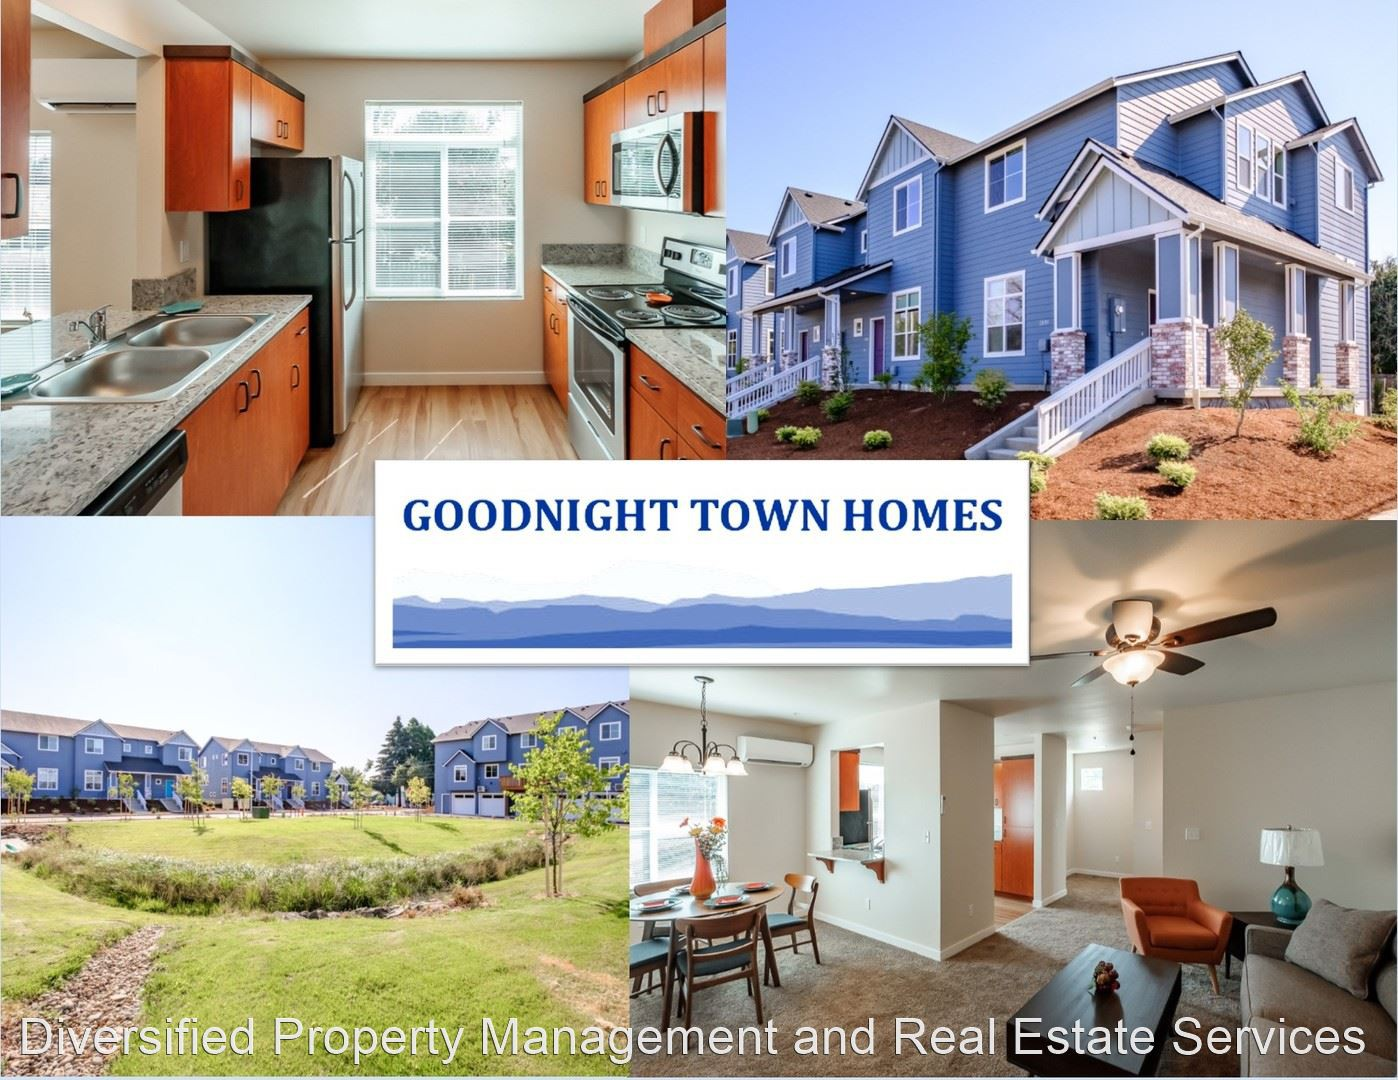 Apartments Near Corvallis 125 SE Goodnight Ave for Corvallis Students in Corvallis, OR